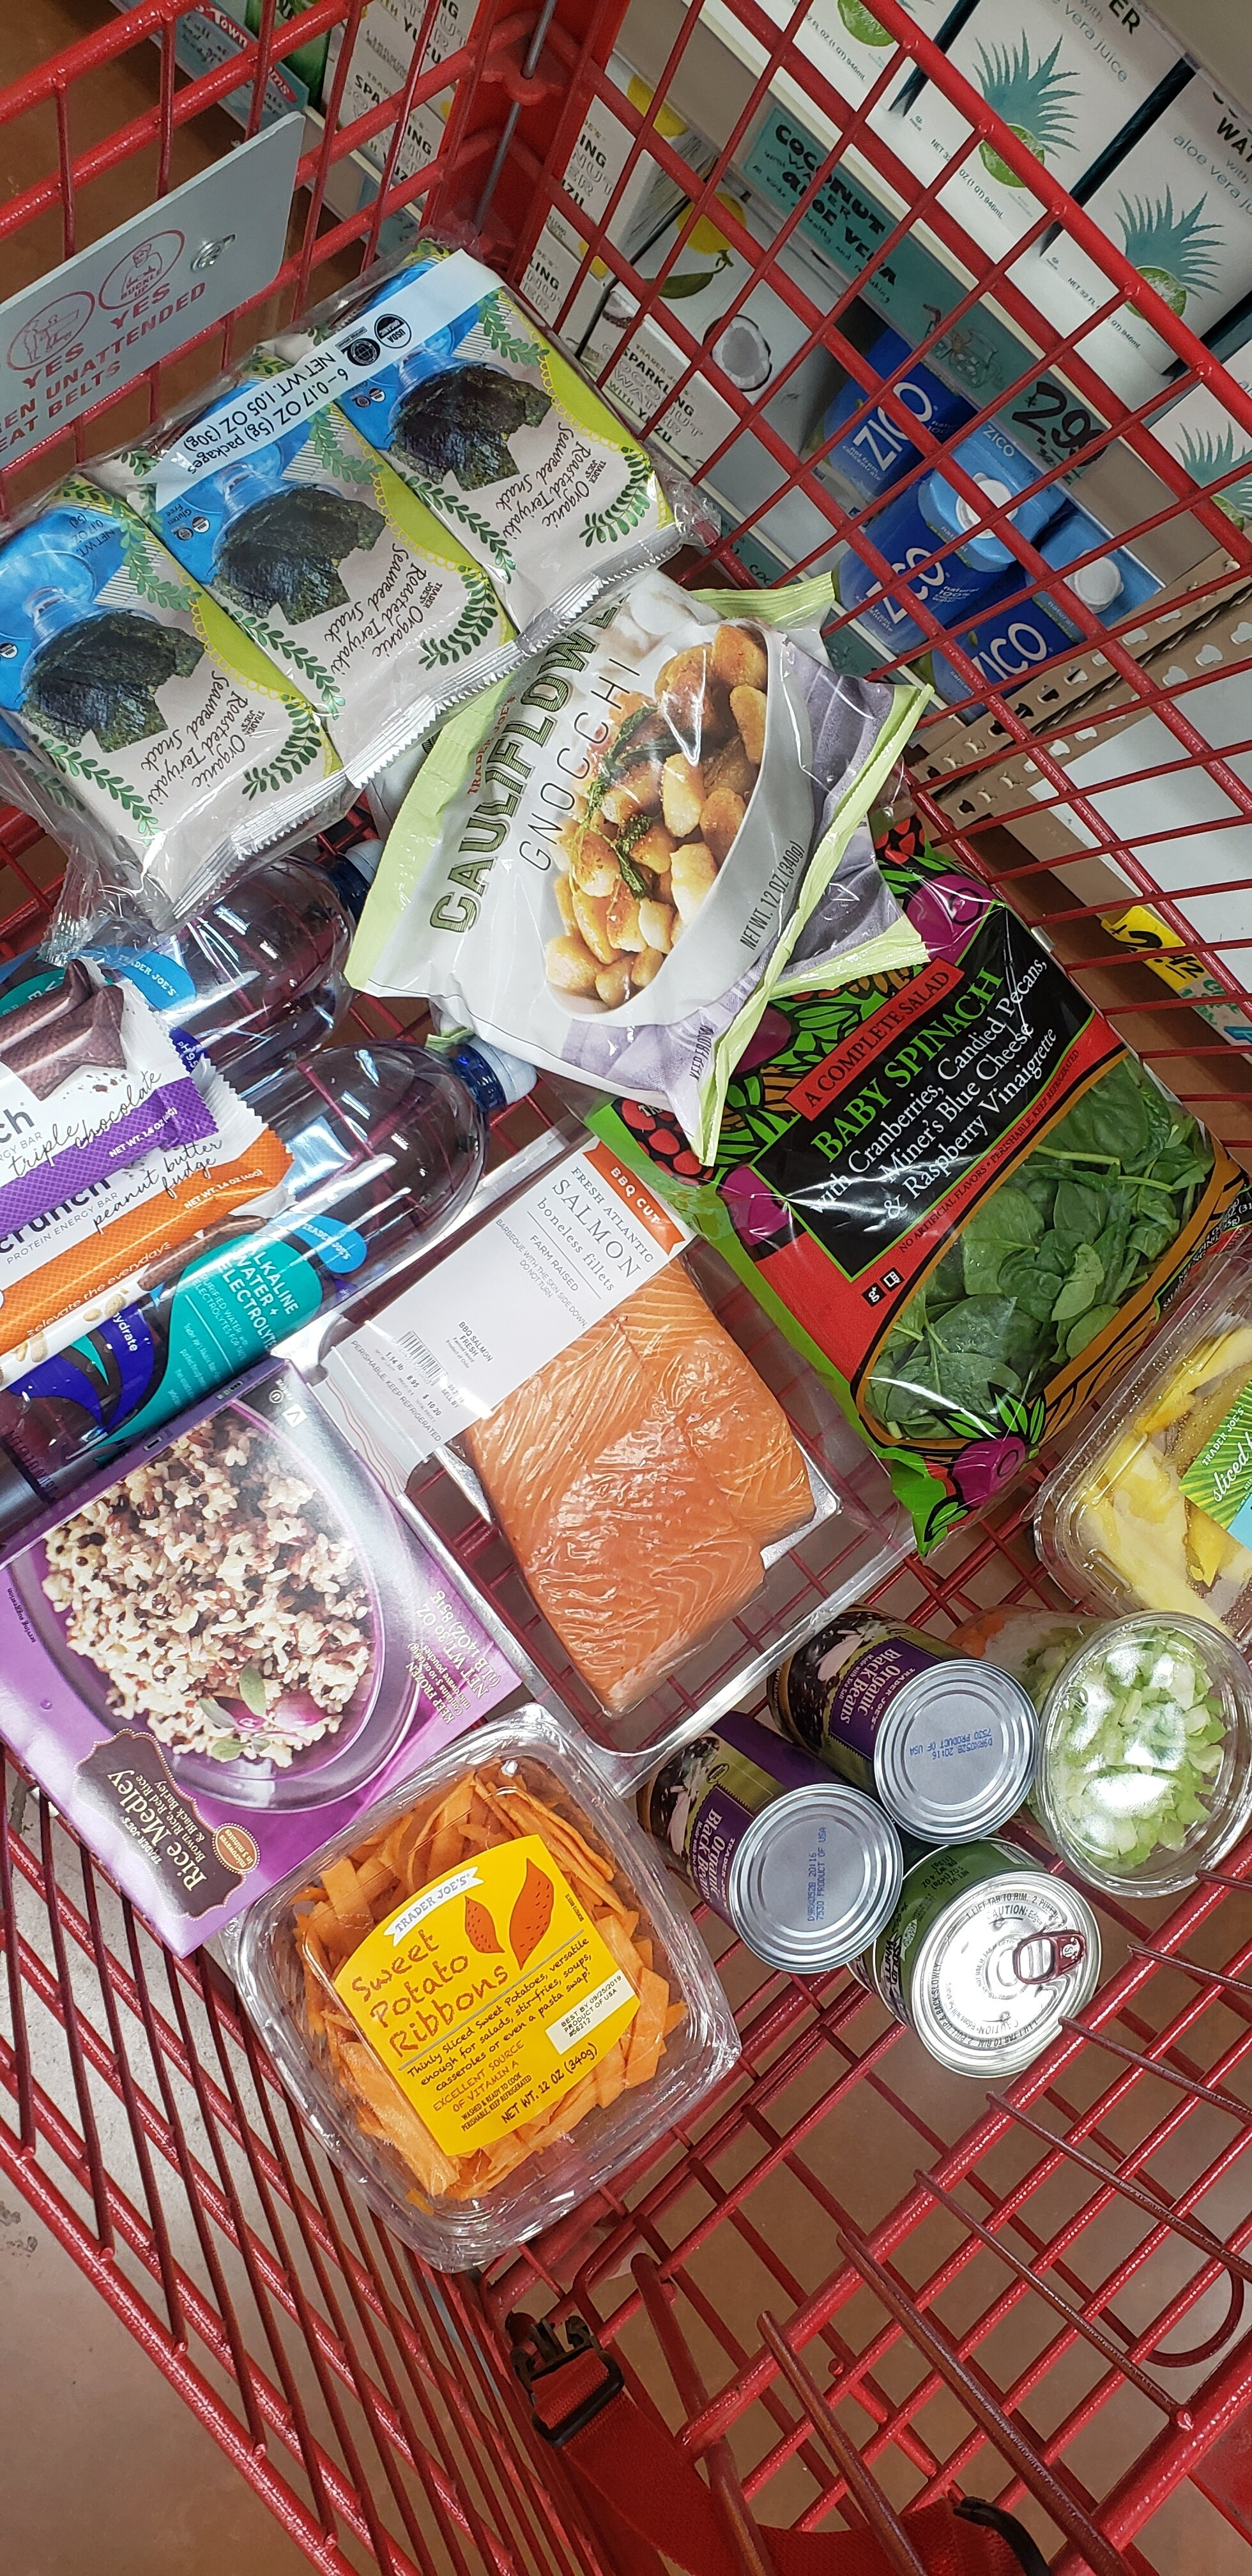 CaCera's Meal Plan - Challenge: $75.00 Total Spent: $61.08Meals PlannedBaked Salmon, Spinach Salad & Cauliflower Gnocchi (Serves 4)Sweet Potato, Black Bean Mexican Bowl (Serves 4)Tuna Salad on top of Raw Spinach (Serves 2)Snacks: Seaweed & MangoPost-Gym / Sweet Tooth: PowerCrunch Protein Bar